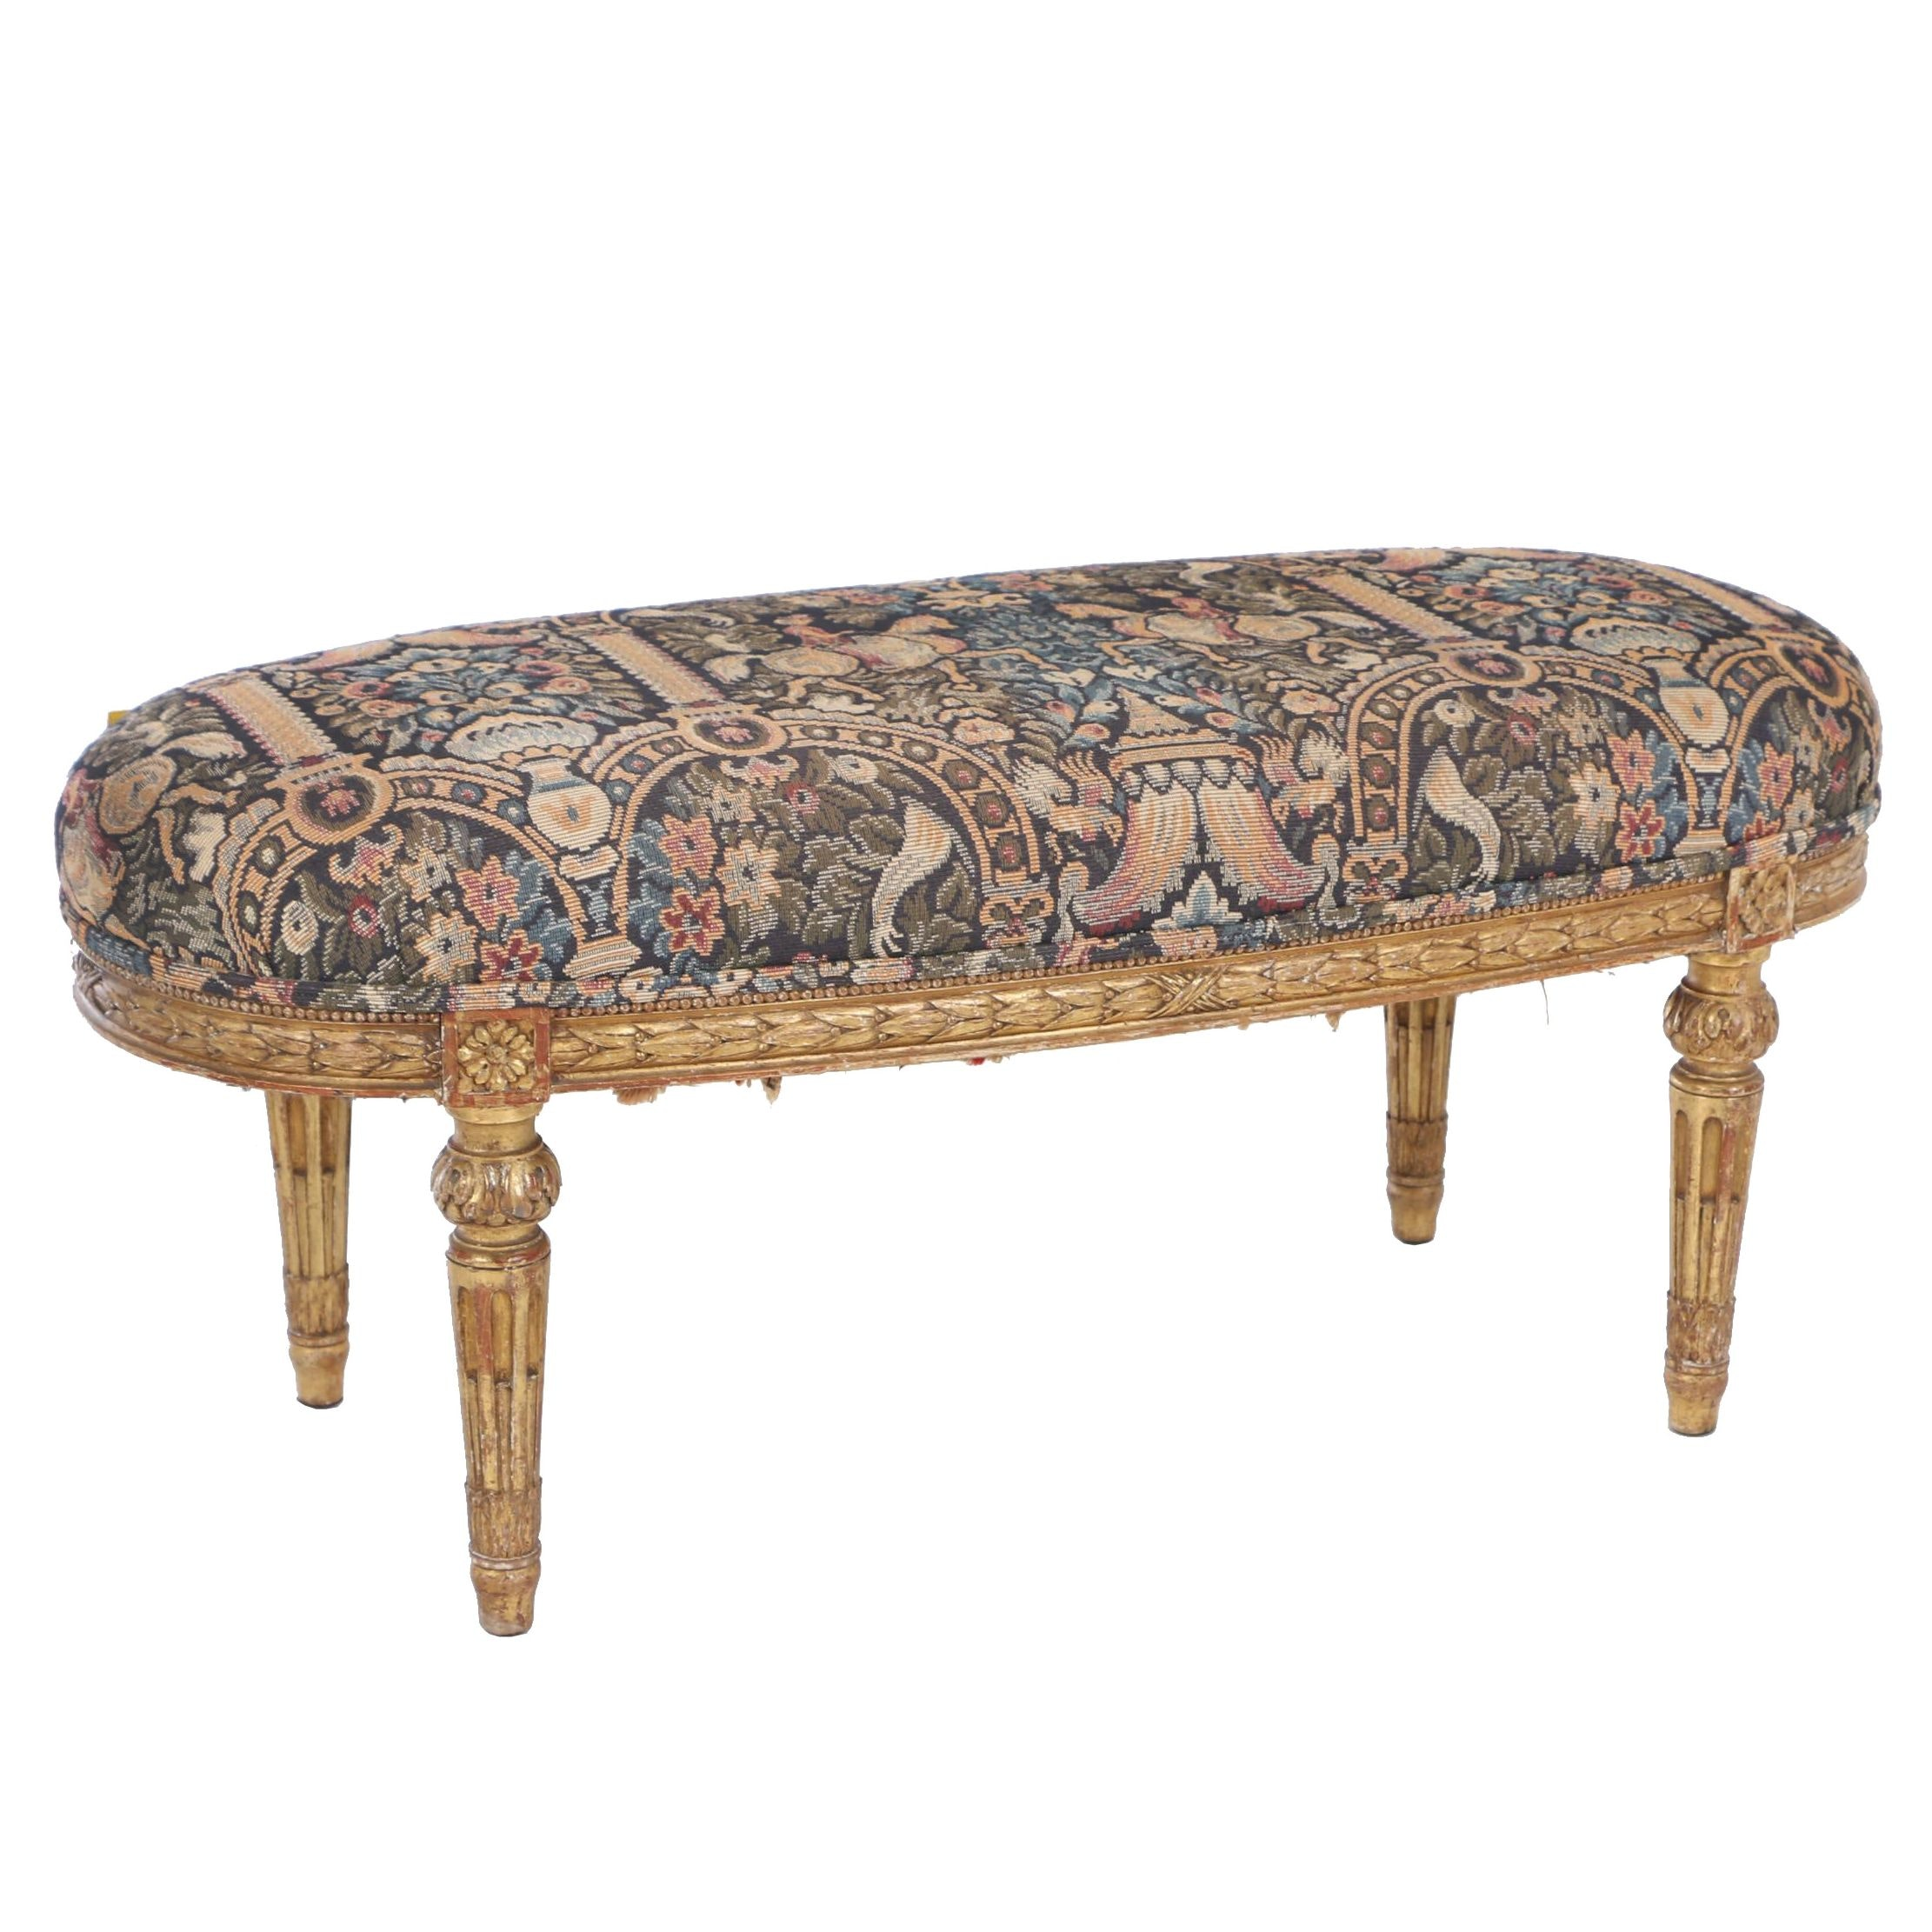 Louis XVI Style Giltwood Bench, Late 19th/Early 20th Century